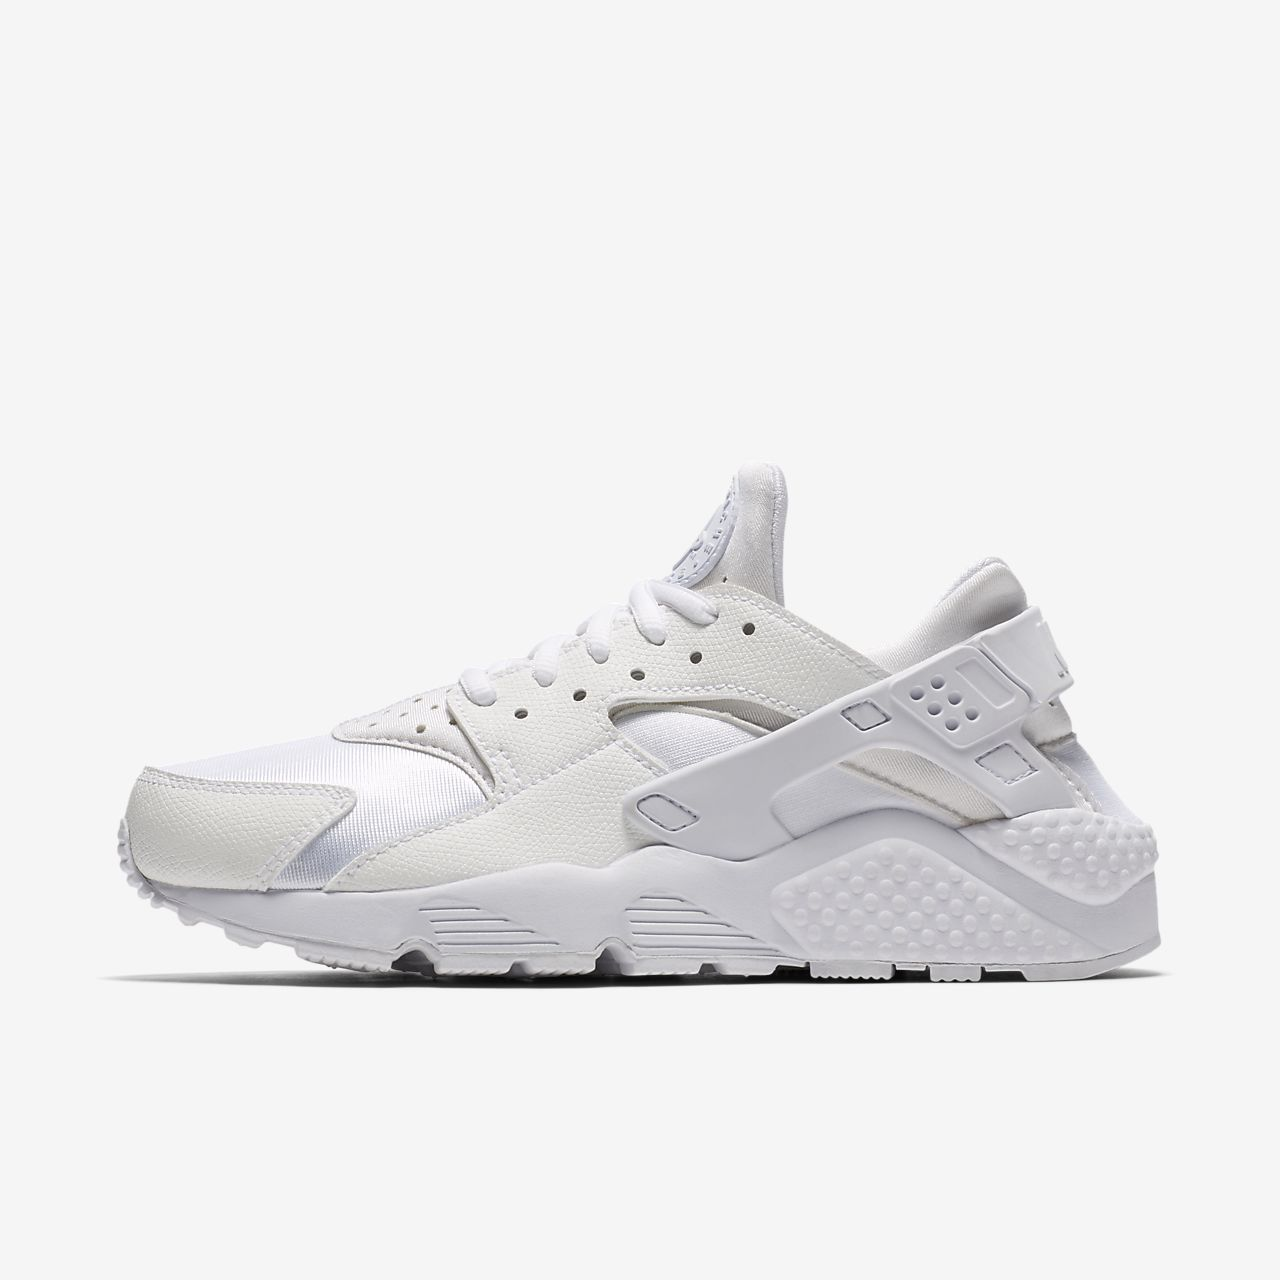 ... Nike Air Huarache Women's Shoe